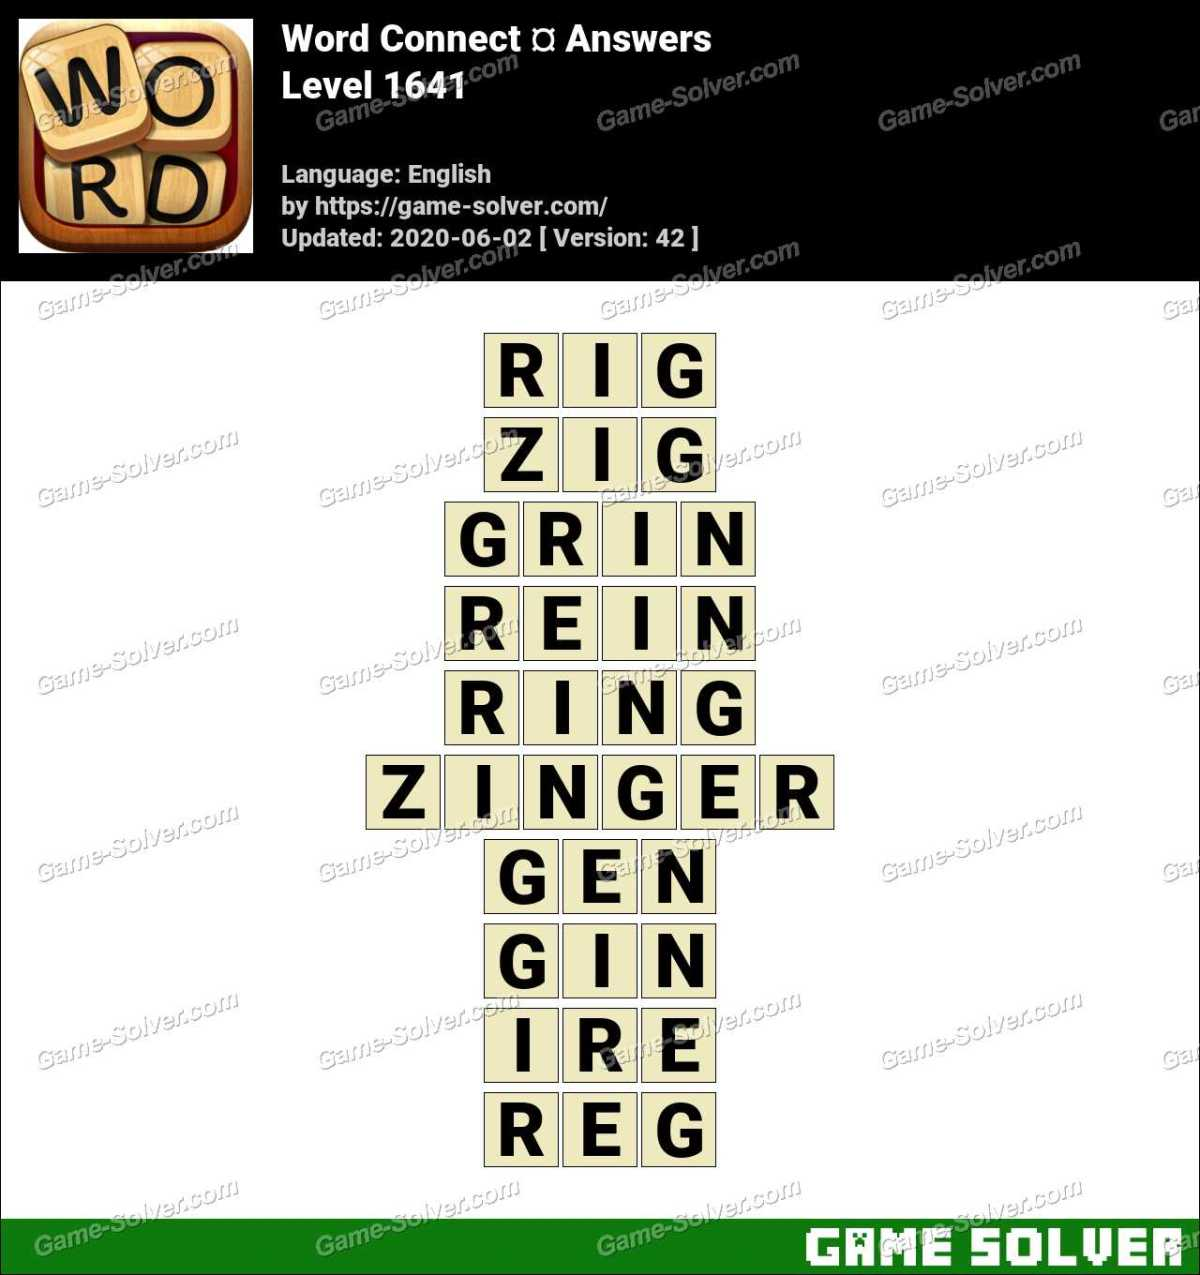 Word Connect Level 1641 Answers